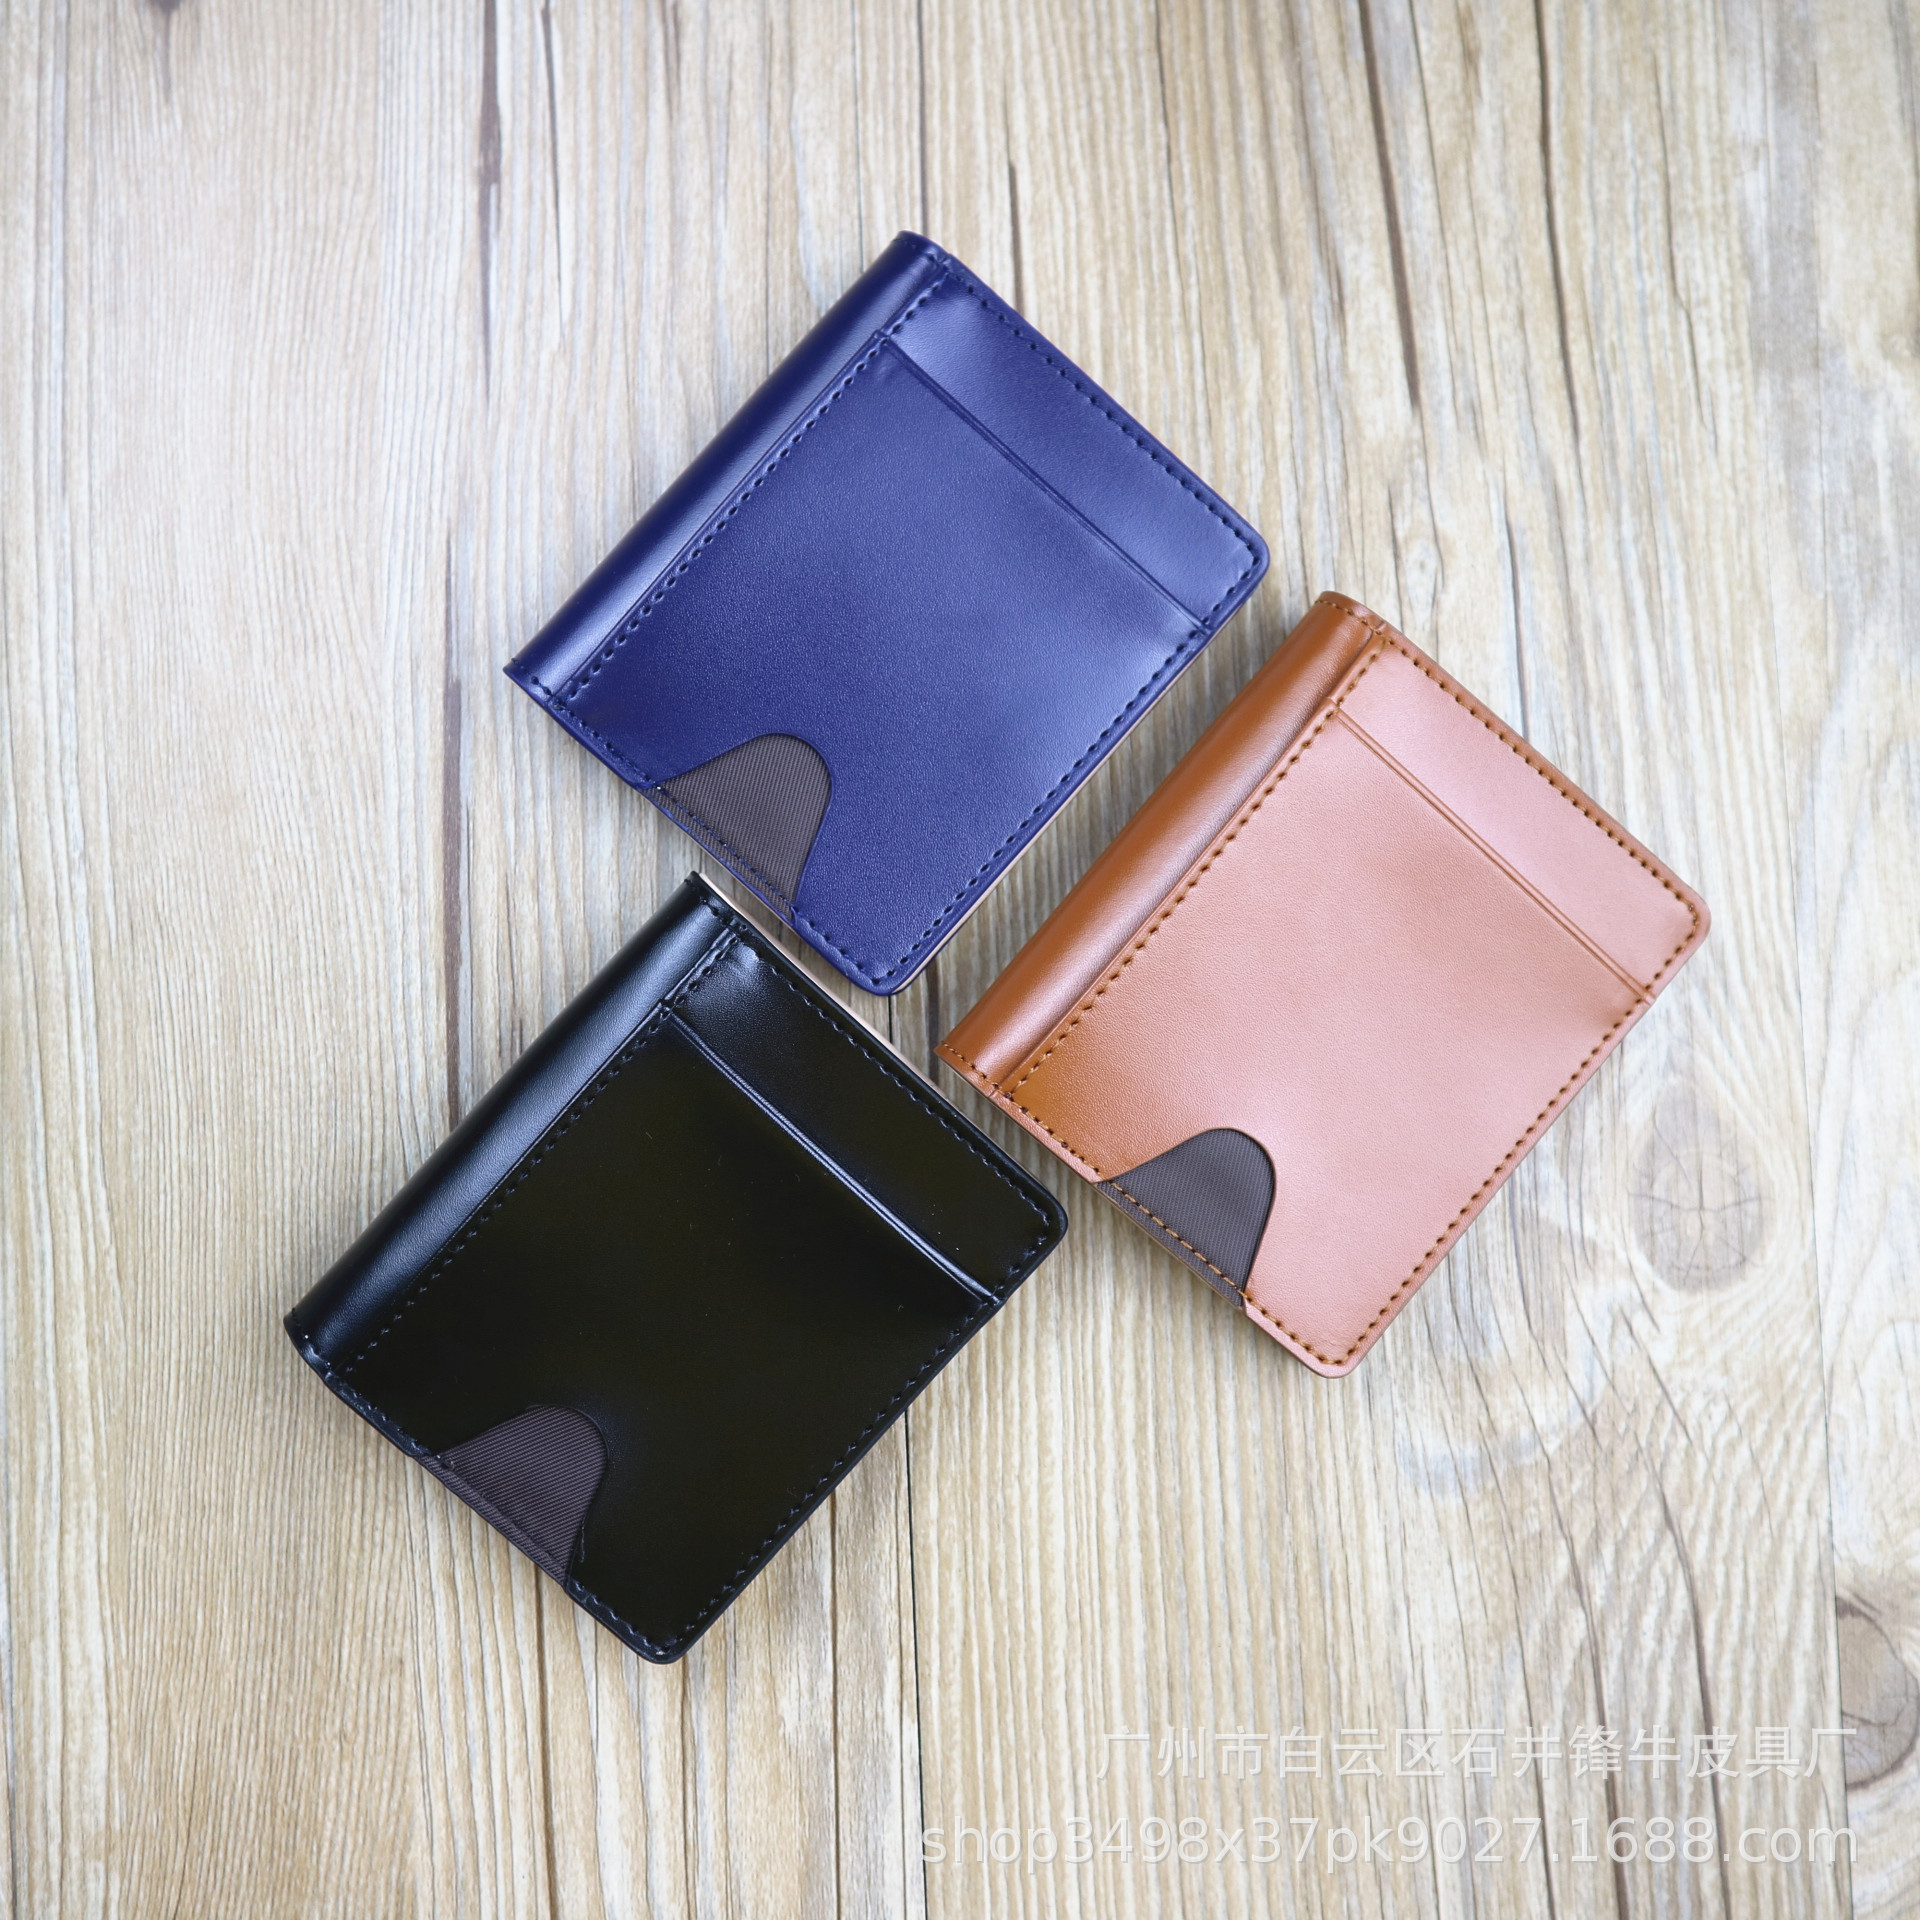 Japanese Style Genuine Leather Bright Surface Coin Purse Japan Artificial Leather PU Purse Ultra-Moved Coins Storgage Bag